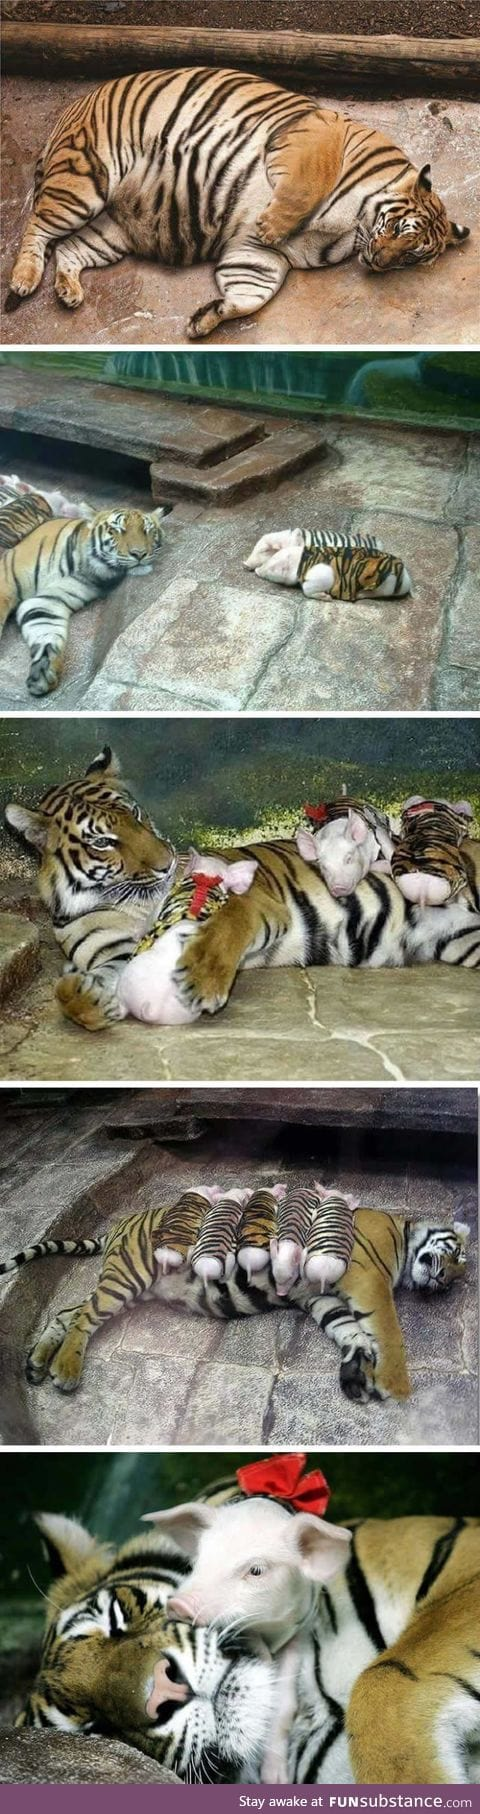 Zookeepers use piglets in tiger stripes to comfort a tigress who lost her cubs